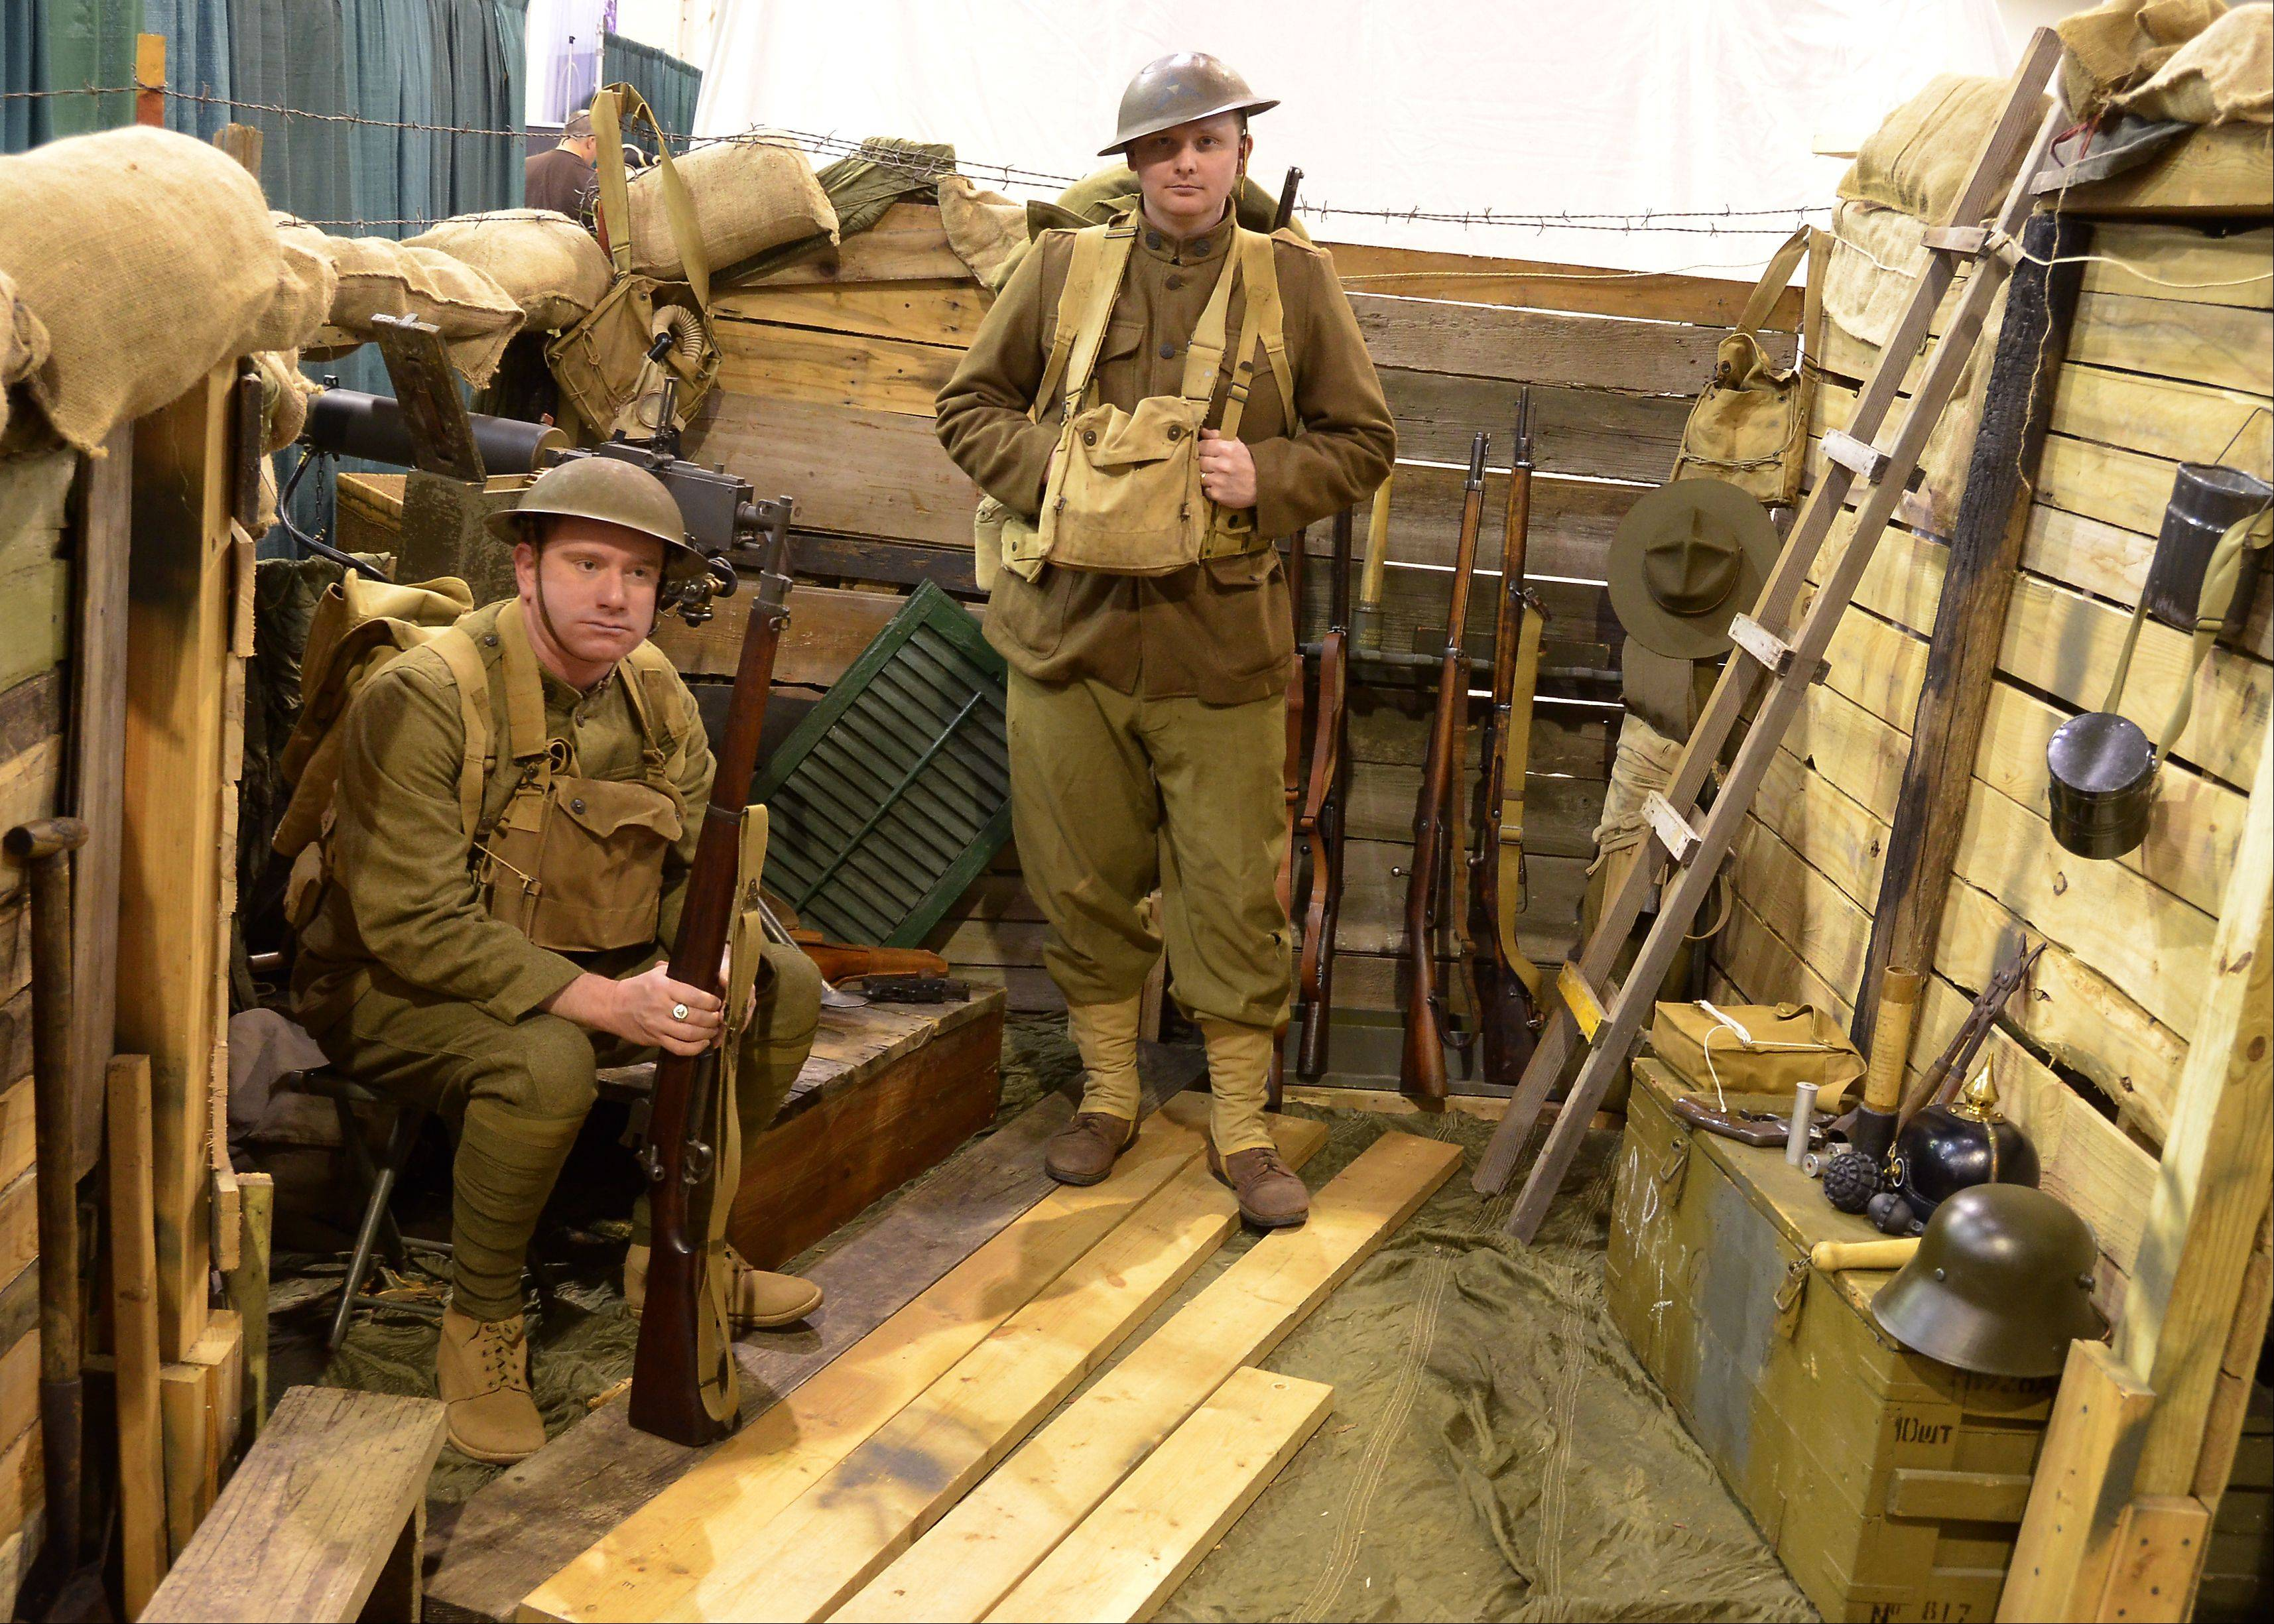 Bill Zars/bzars@dailyherald.com ¬ George Bruckert, left, of Lisle and Bill Thurston of Oswego spent some time in a World War l trench at a previous edition of the Military History Fest convention at Pheasant Run Resort in St. Charles.